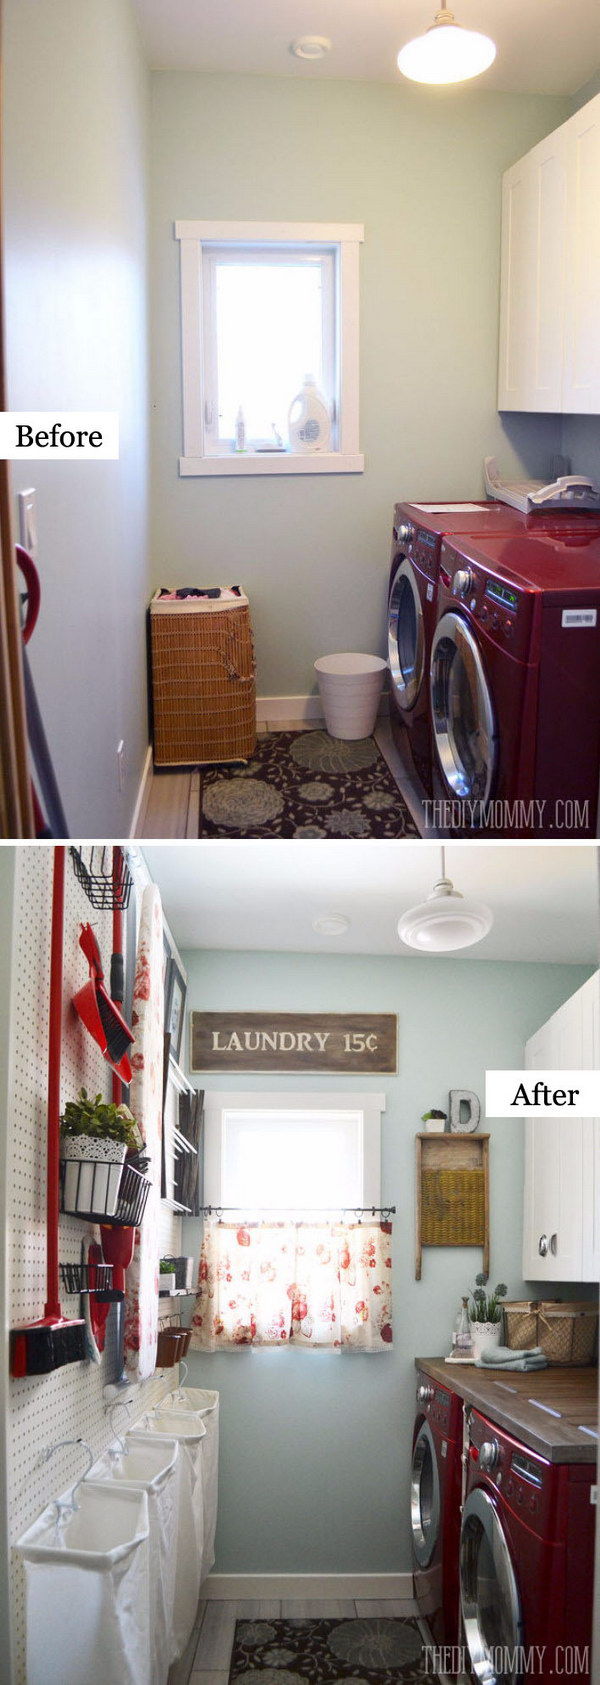 A Small Laundry Room is Made More Functional and Pretty on a Small Budget.